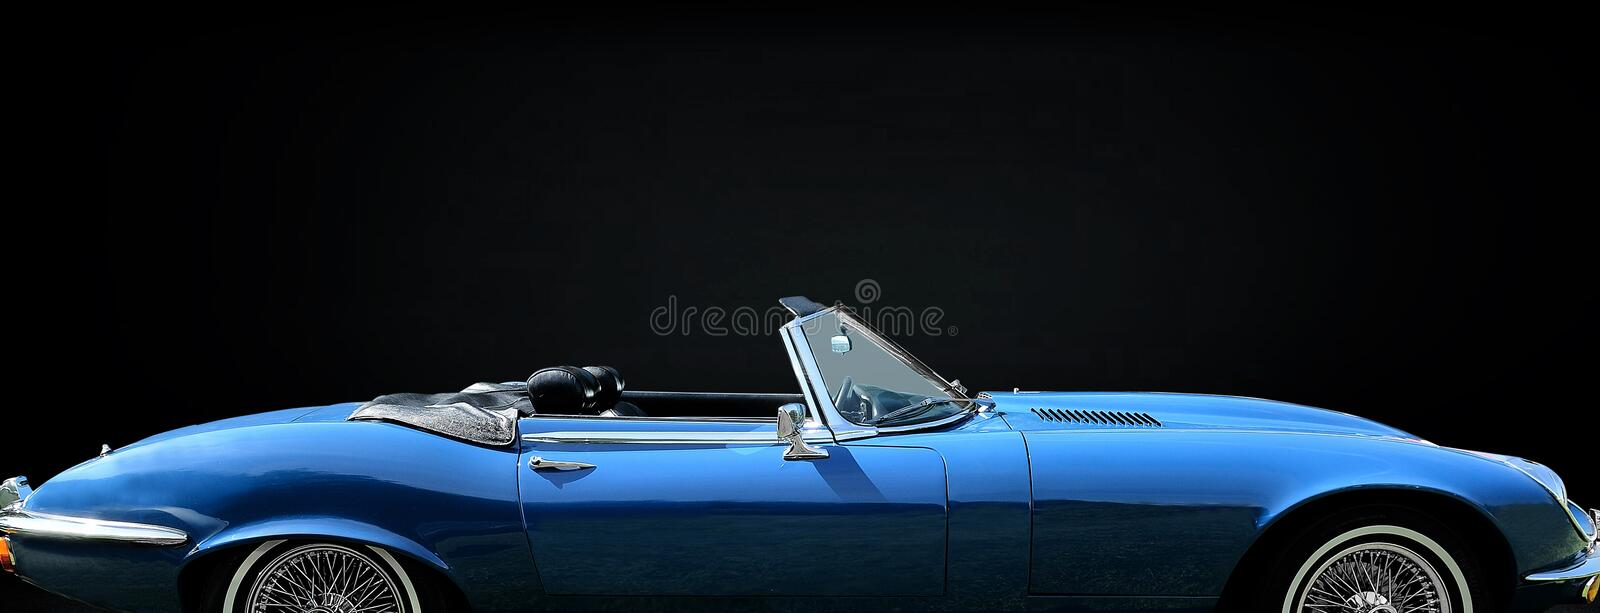 Jaguar E Type stock photo